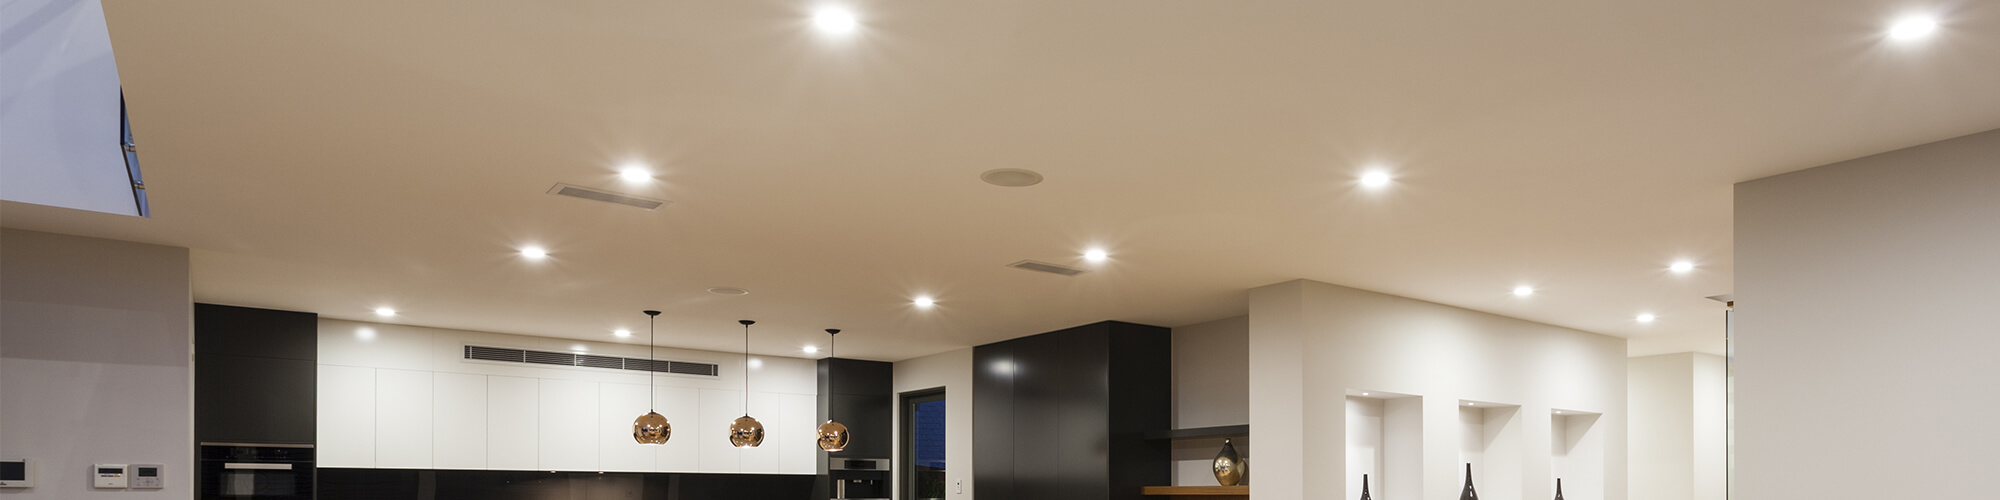 Recessed Lighting Recessed Lighting